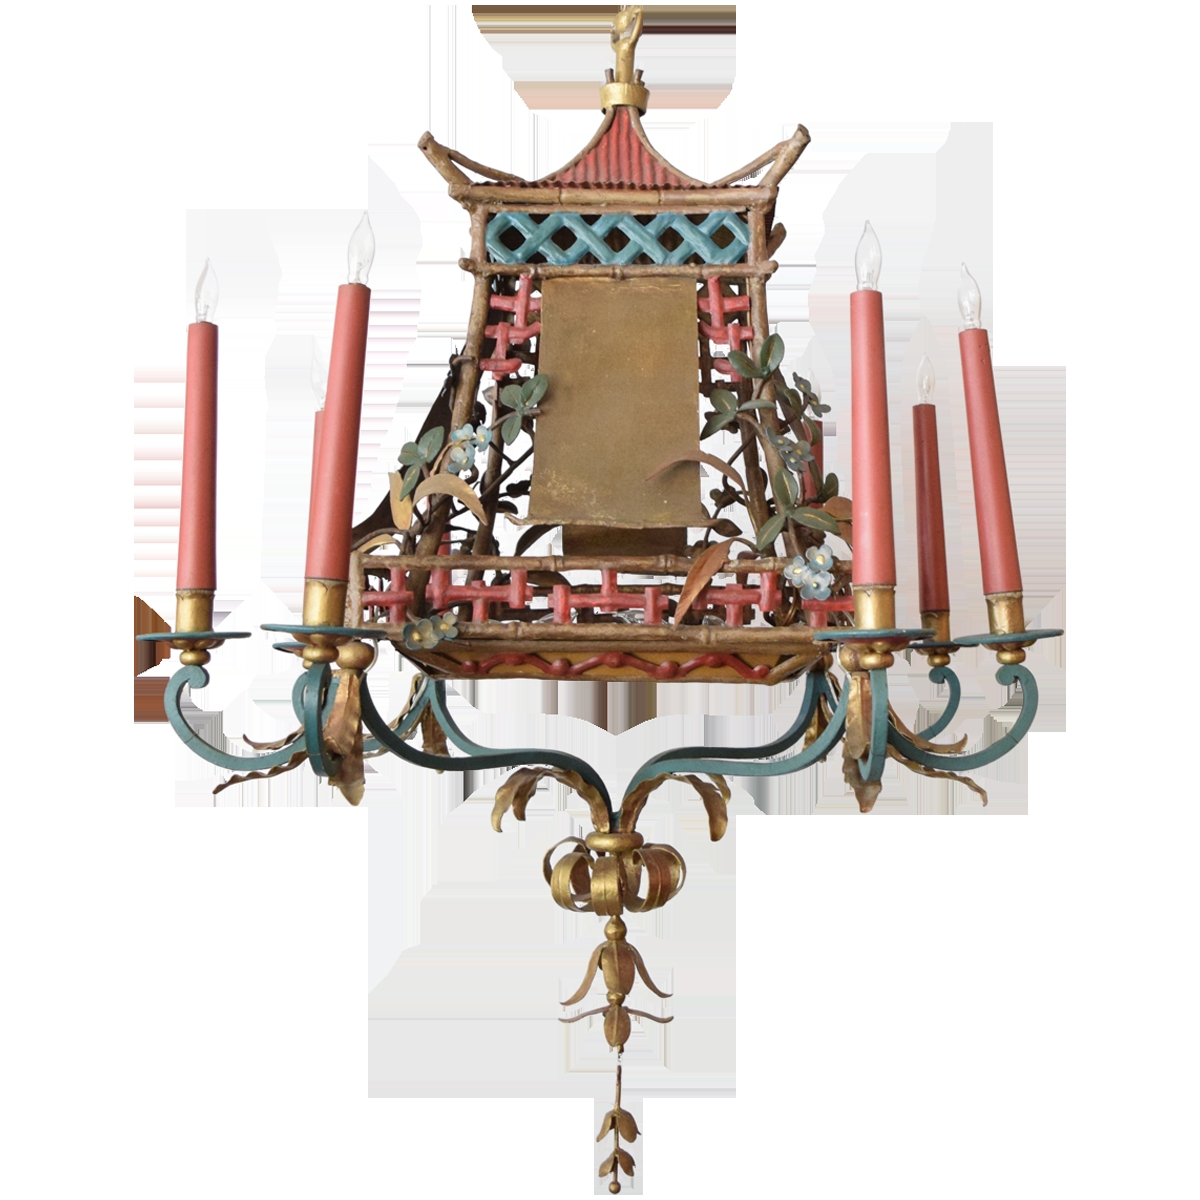 Viyet Designer Furniture Lighting Vintage Chinoiserie Chandelier Intended For Chinoiserie Chandeliers (Image 24 of 25)